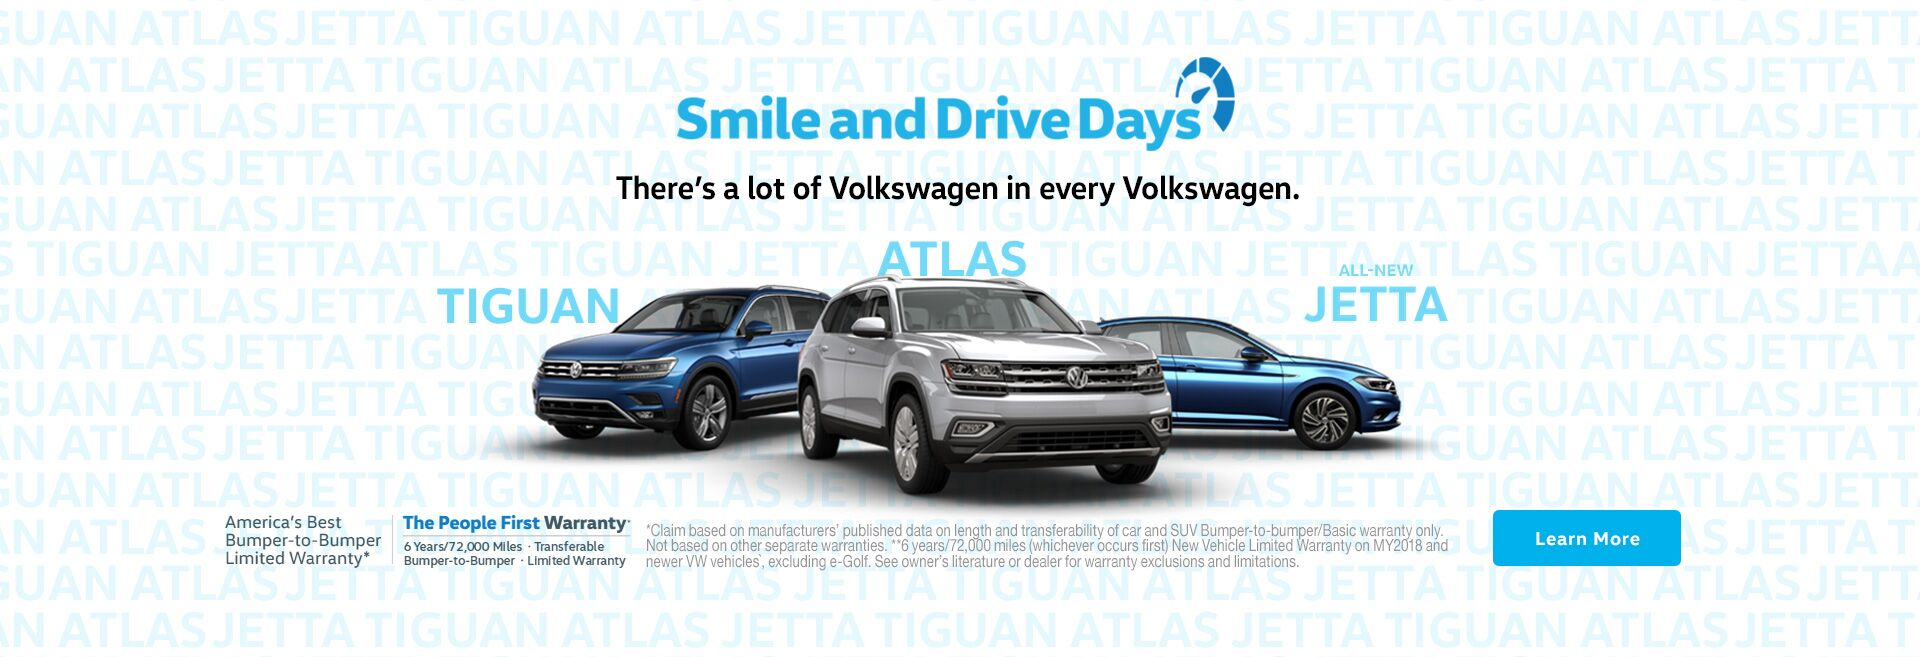 Volkswagen Smile and Drive Days in El Paso